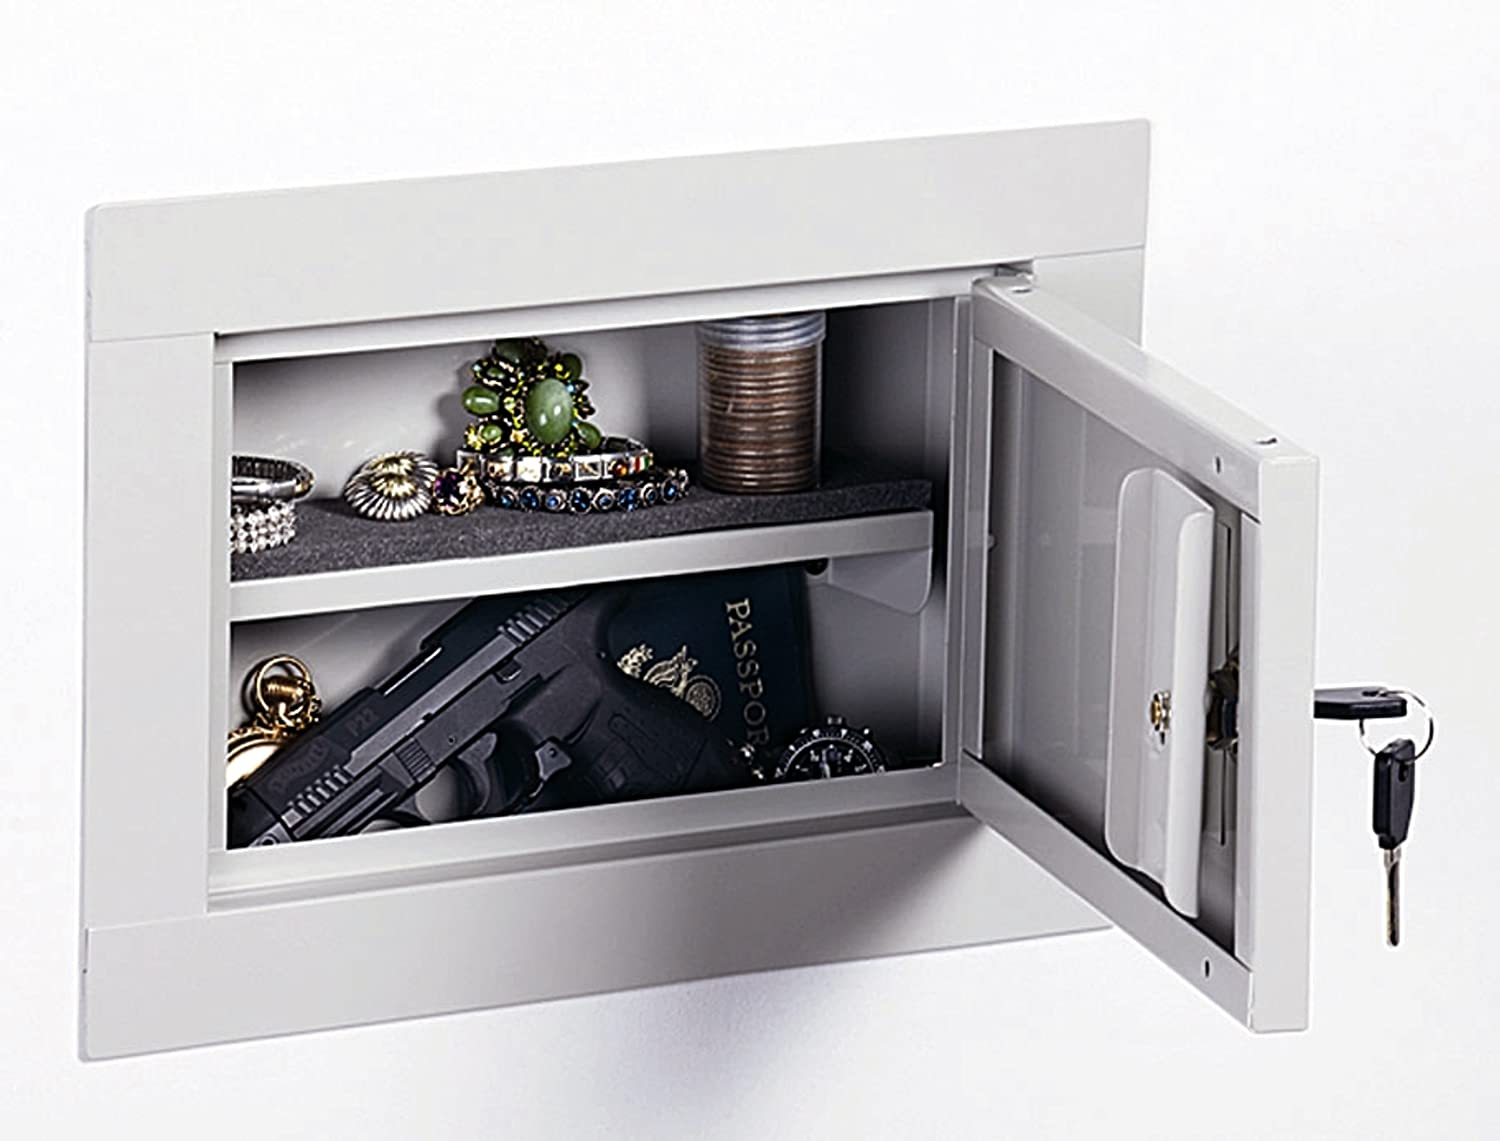 fire size document paper security image chubbsafe safes for cabinet archive chubbsafes